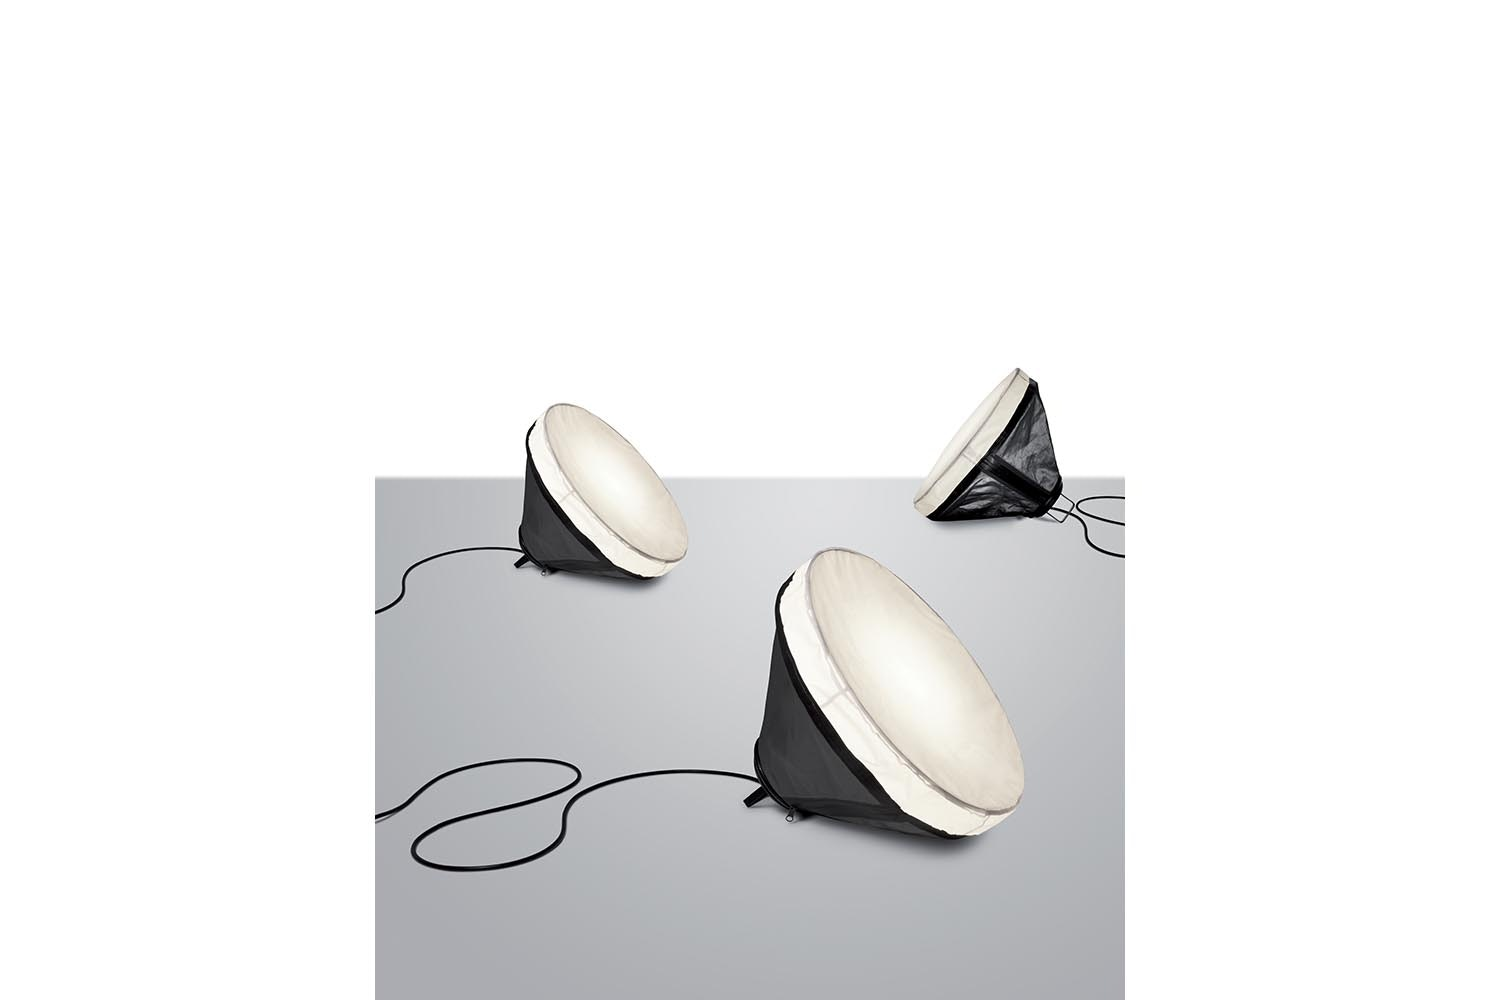 Drumbox Table Lamp by Successful Living from DIESEL for Foscarini